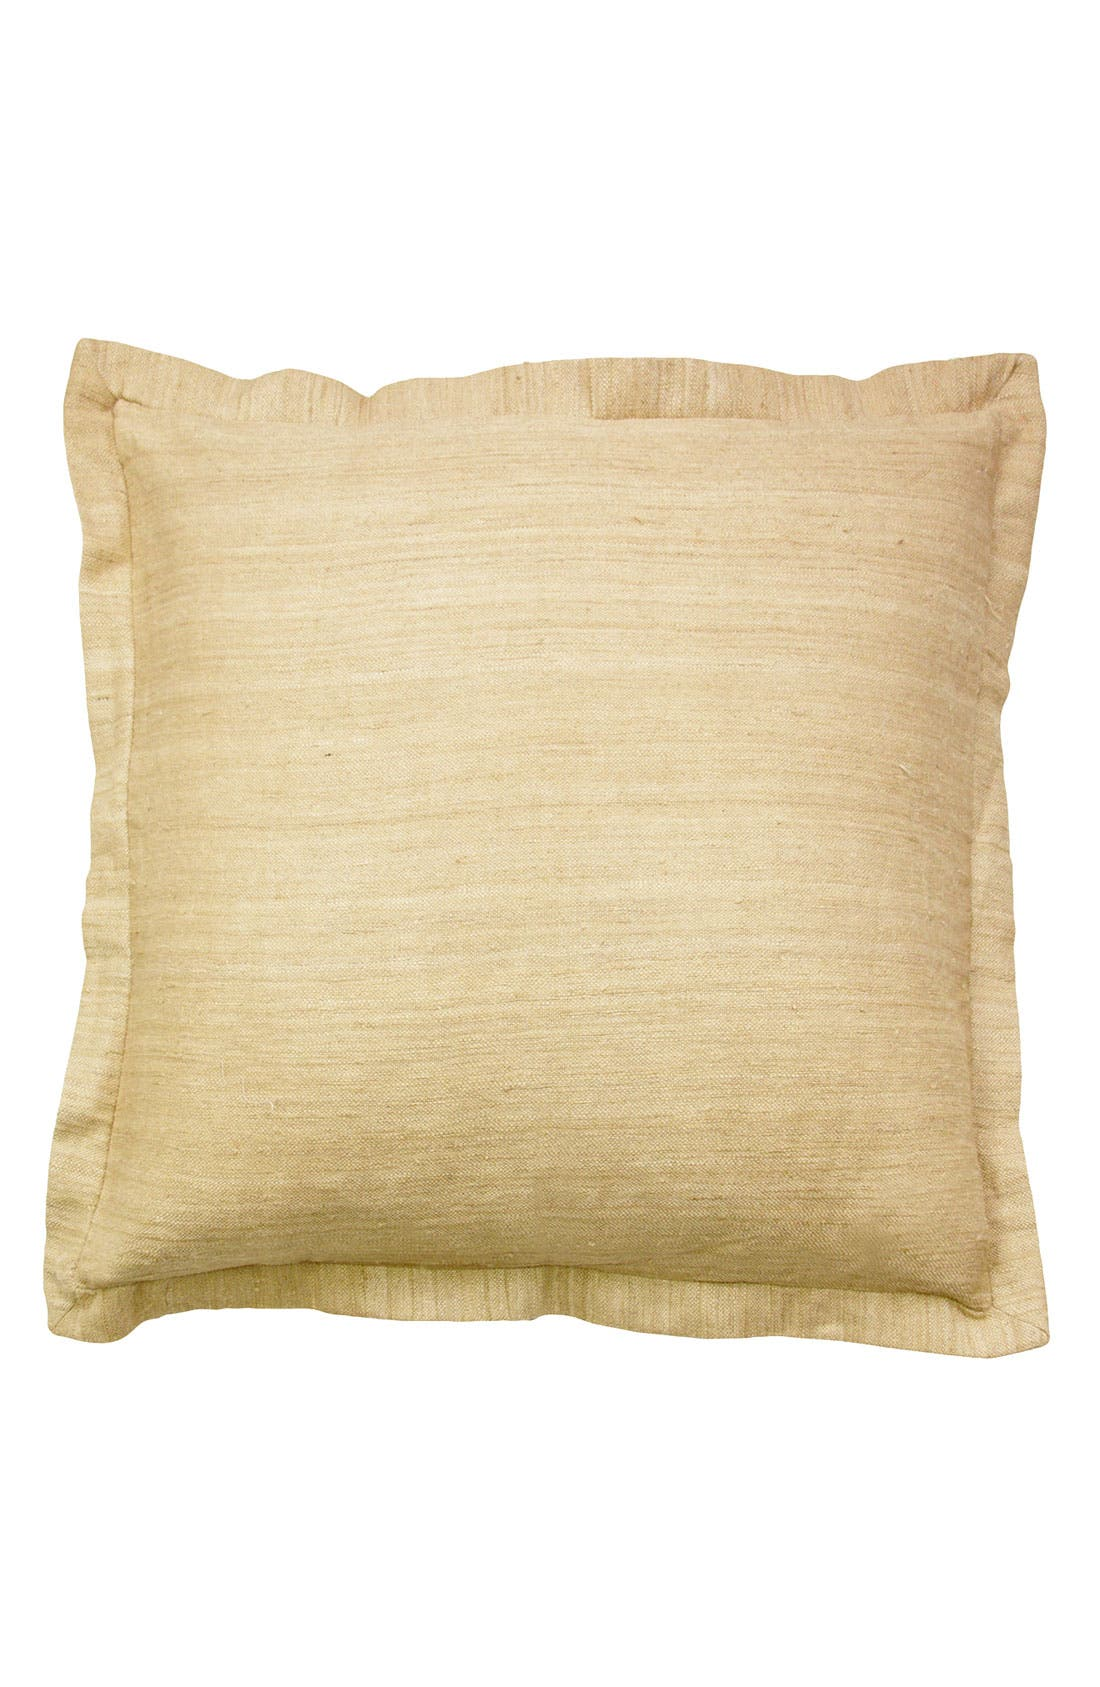 Main Image - Blissliving Home 'Colette' Raw Silk Euro Pillow (Online Only)